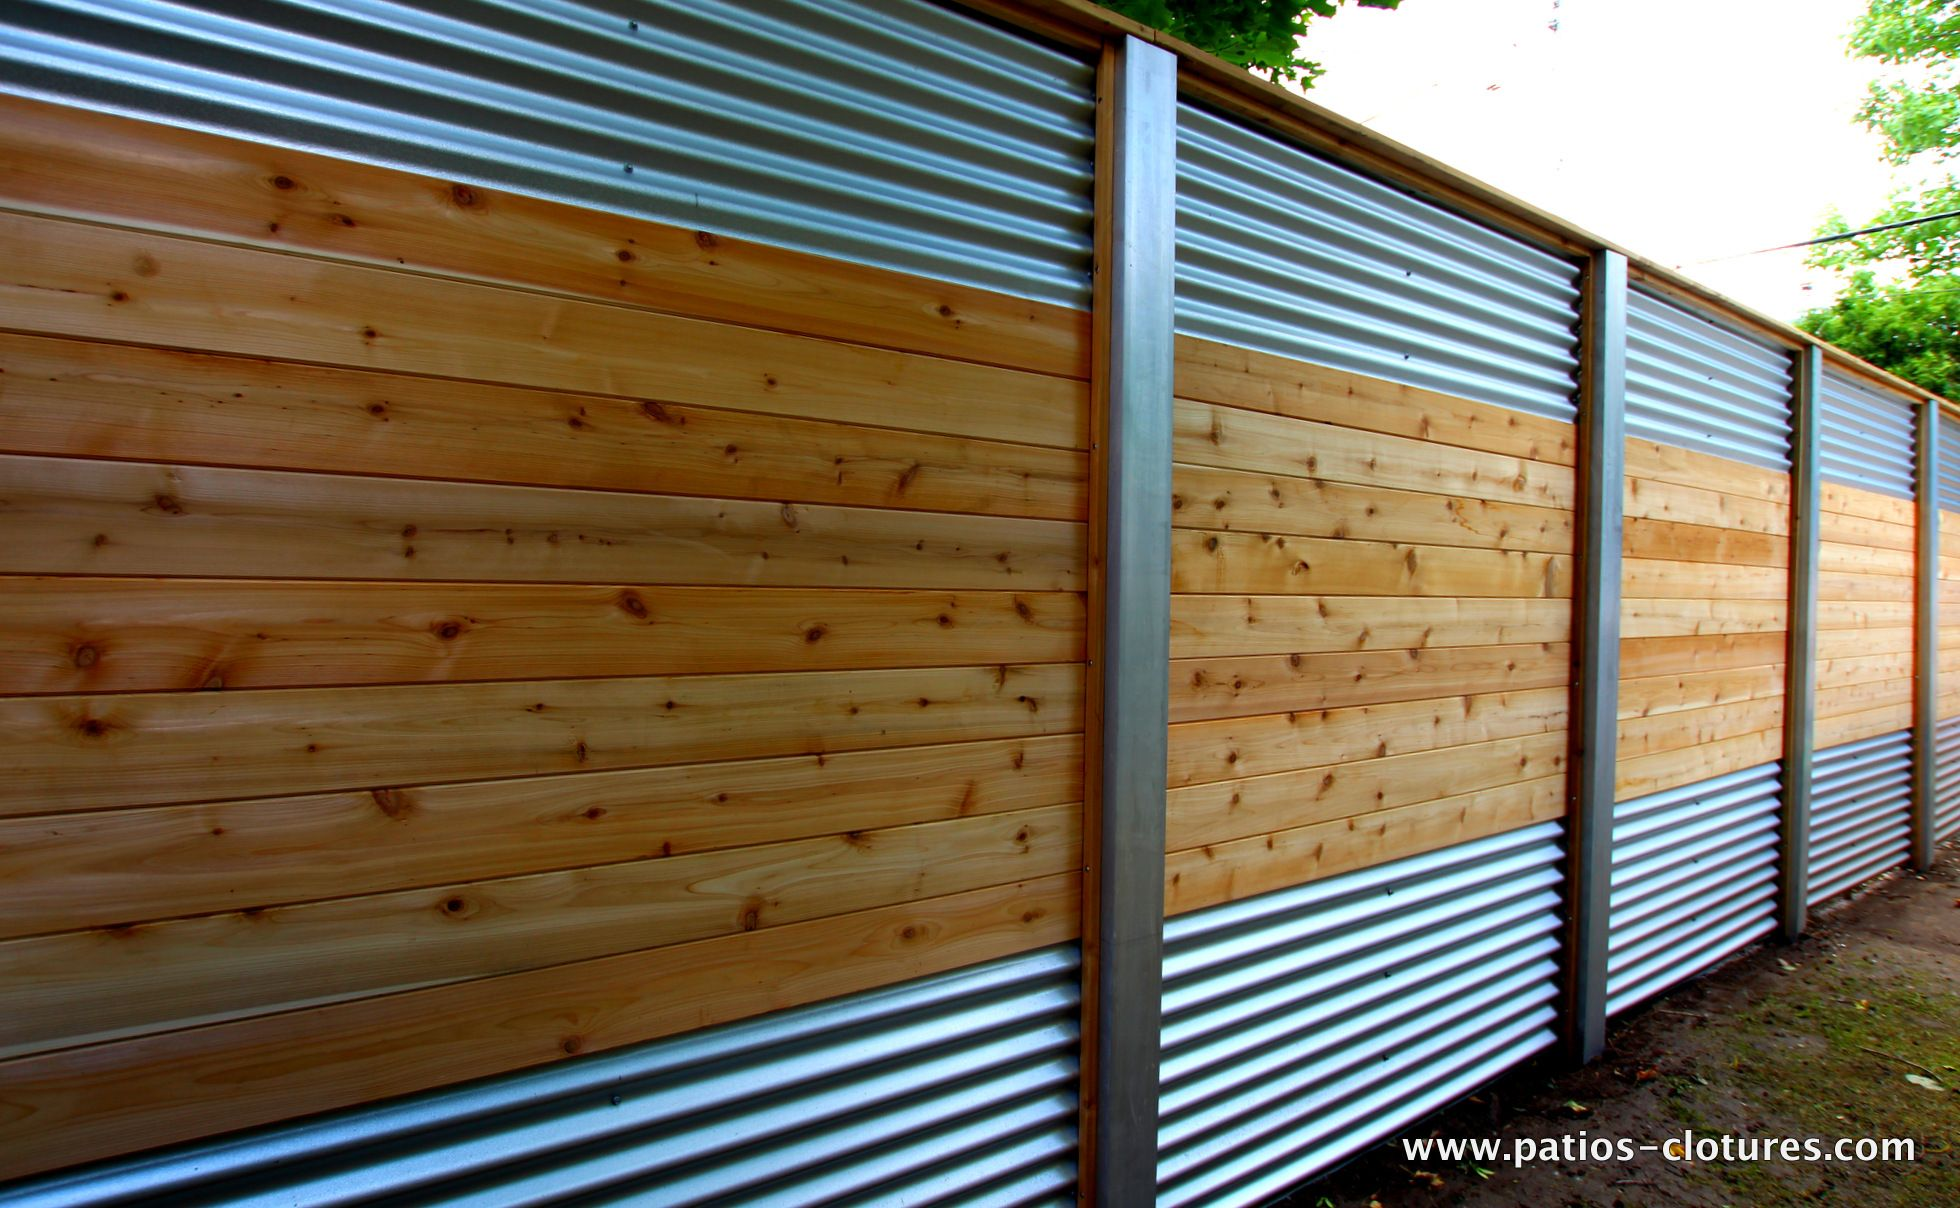 Hybrid Fence With Galvanized Steel Aluminum And Cedar That We